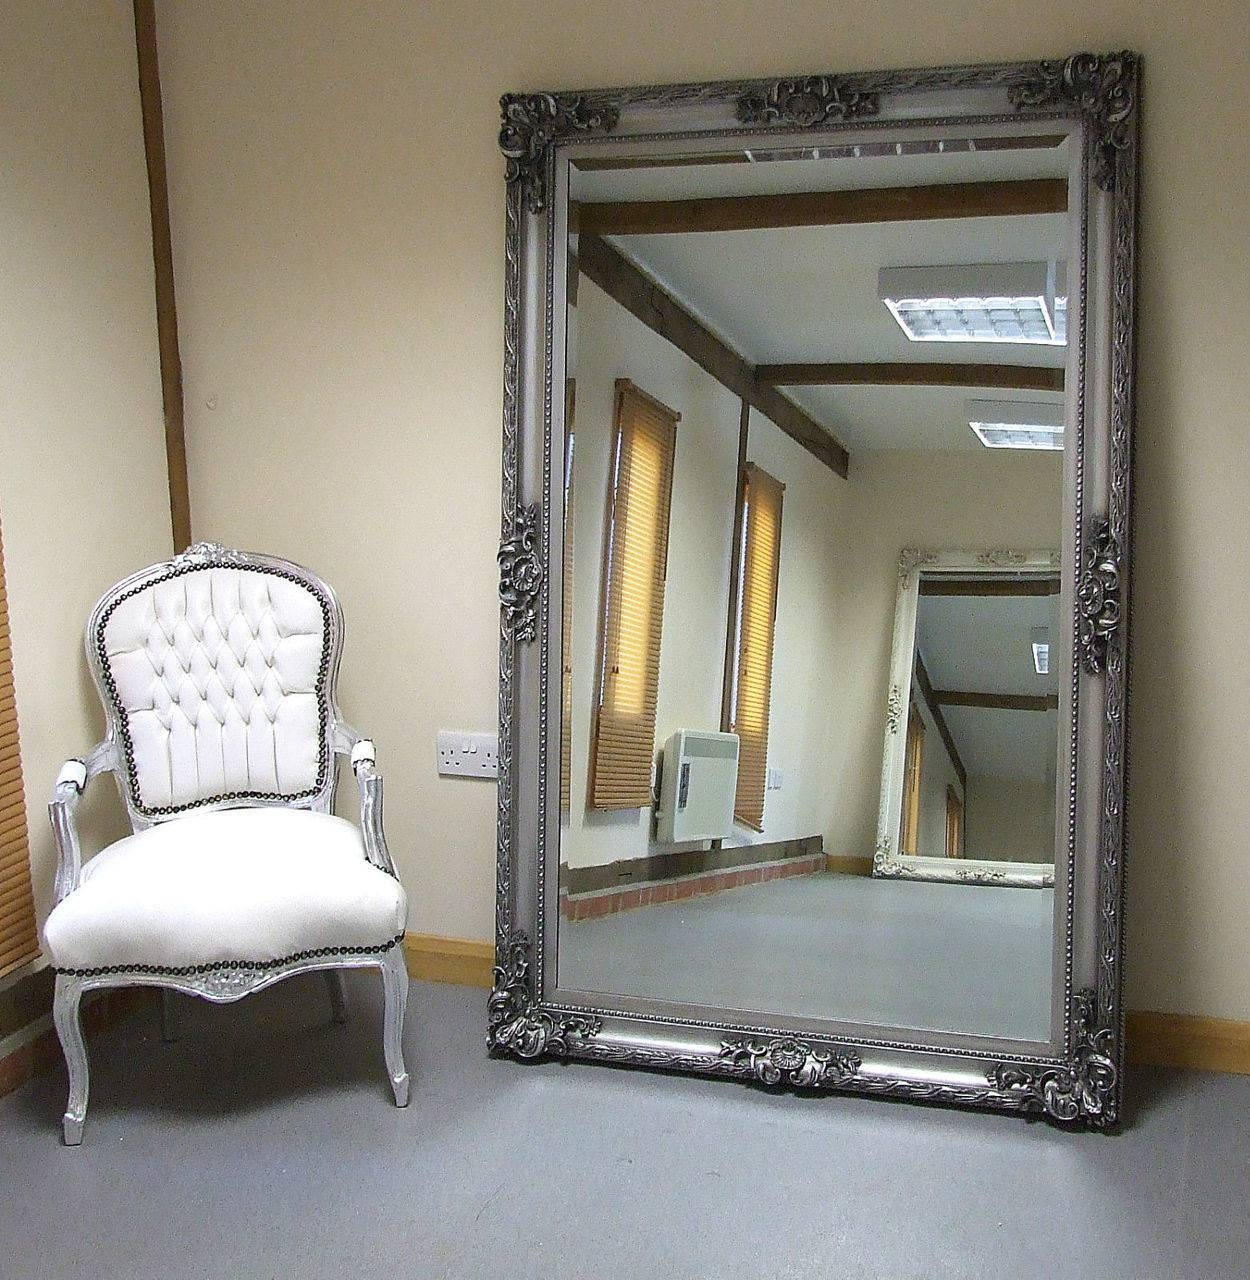 Lovely Leon Extra Large Vintage Full Length Wall Leaner Mirror Regarding Vintage Floor Length Mirrors (View 10 of 15)